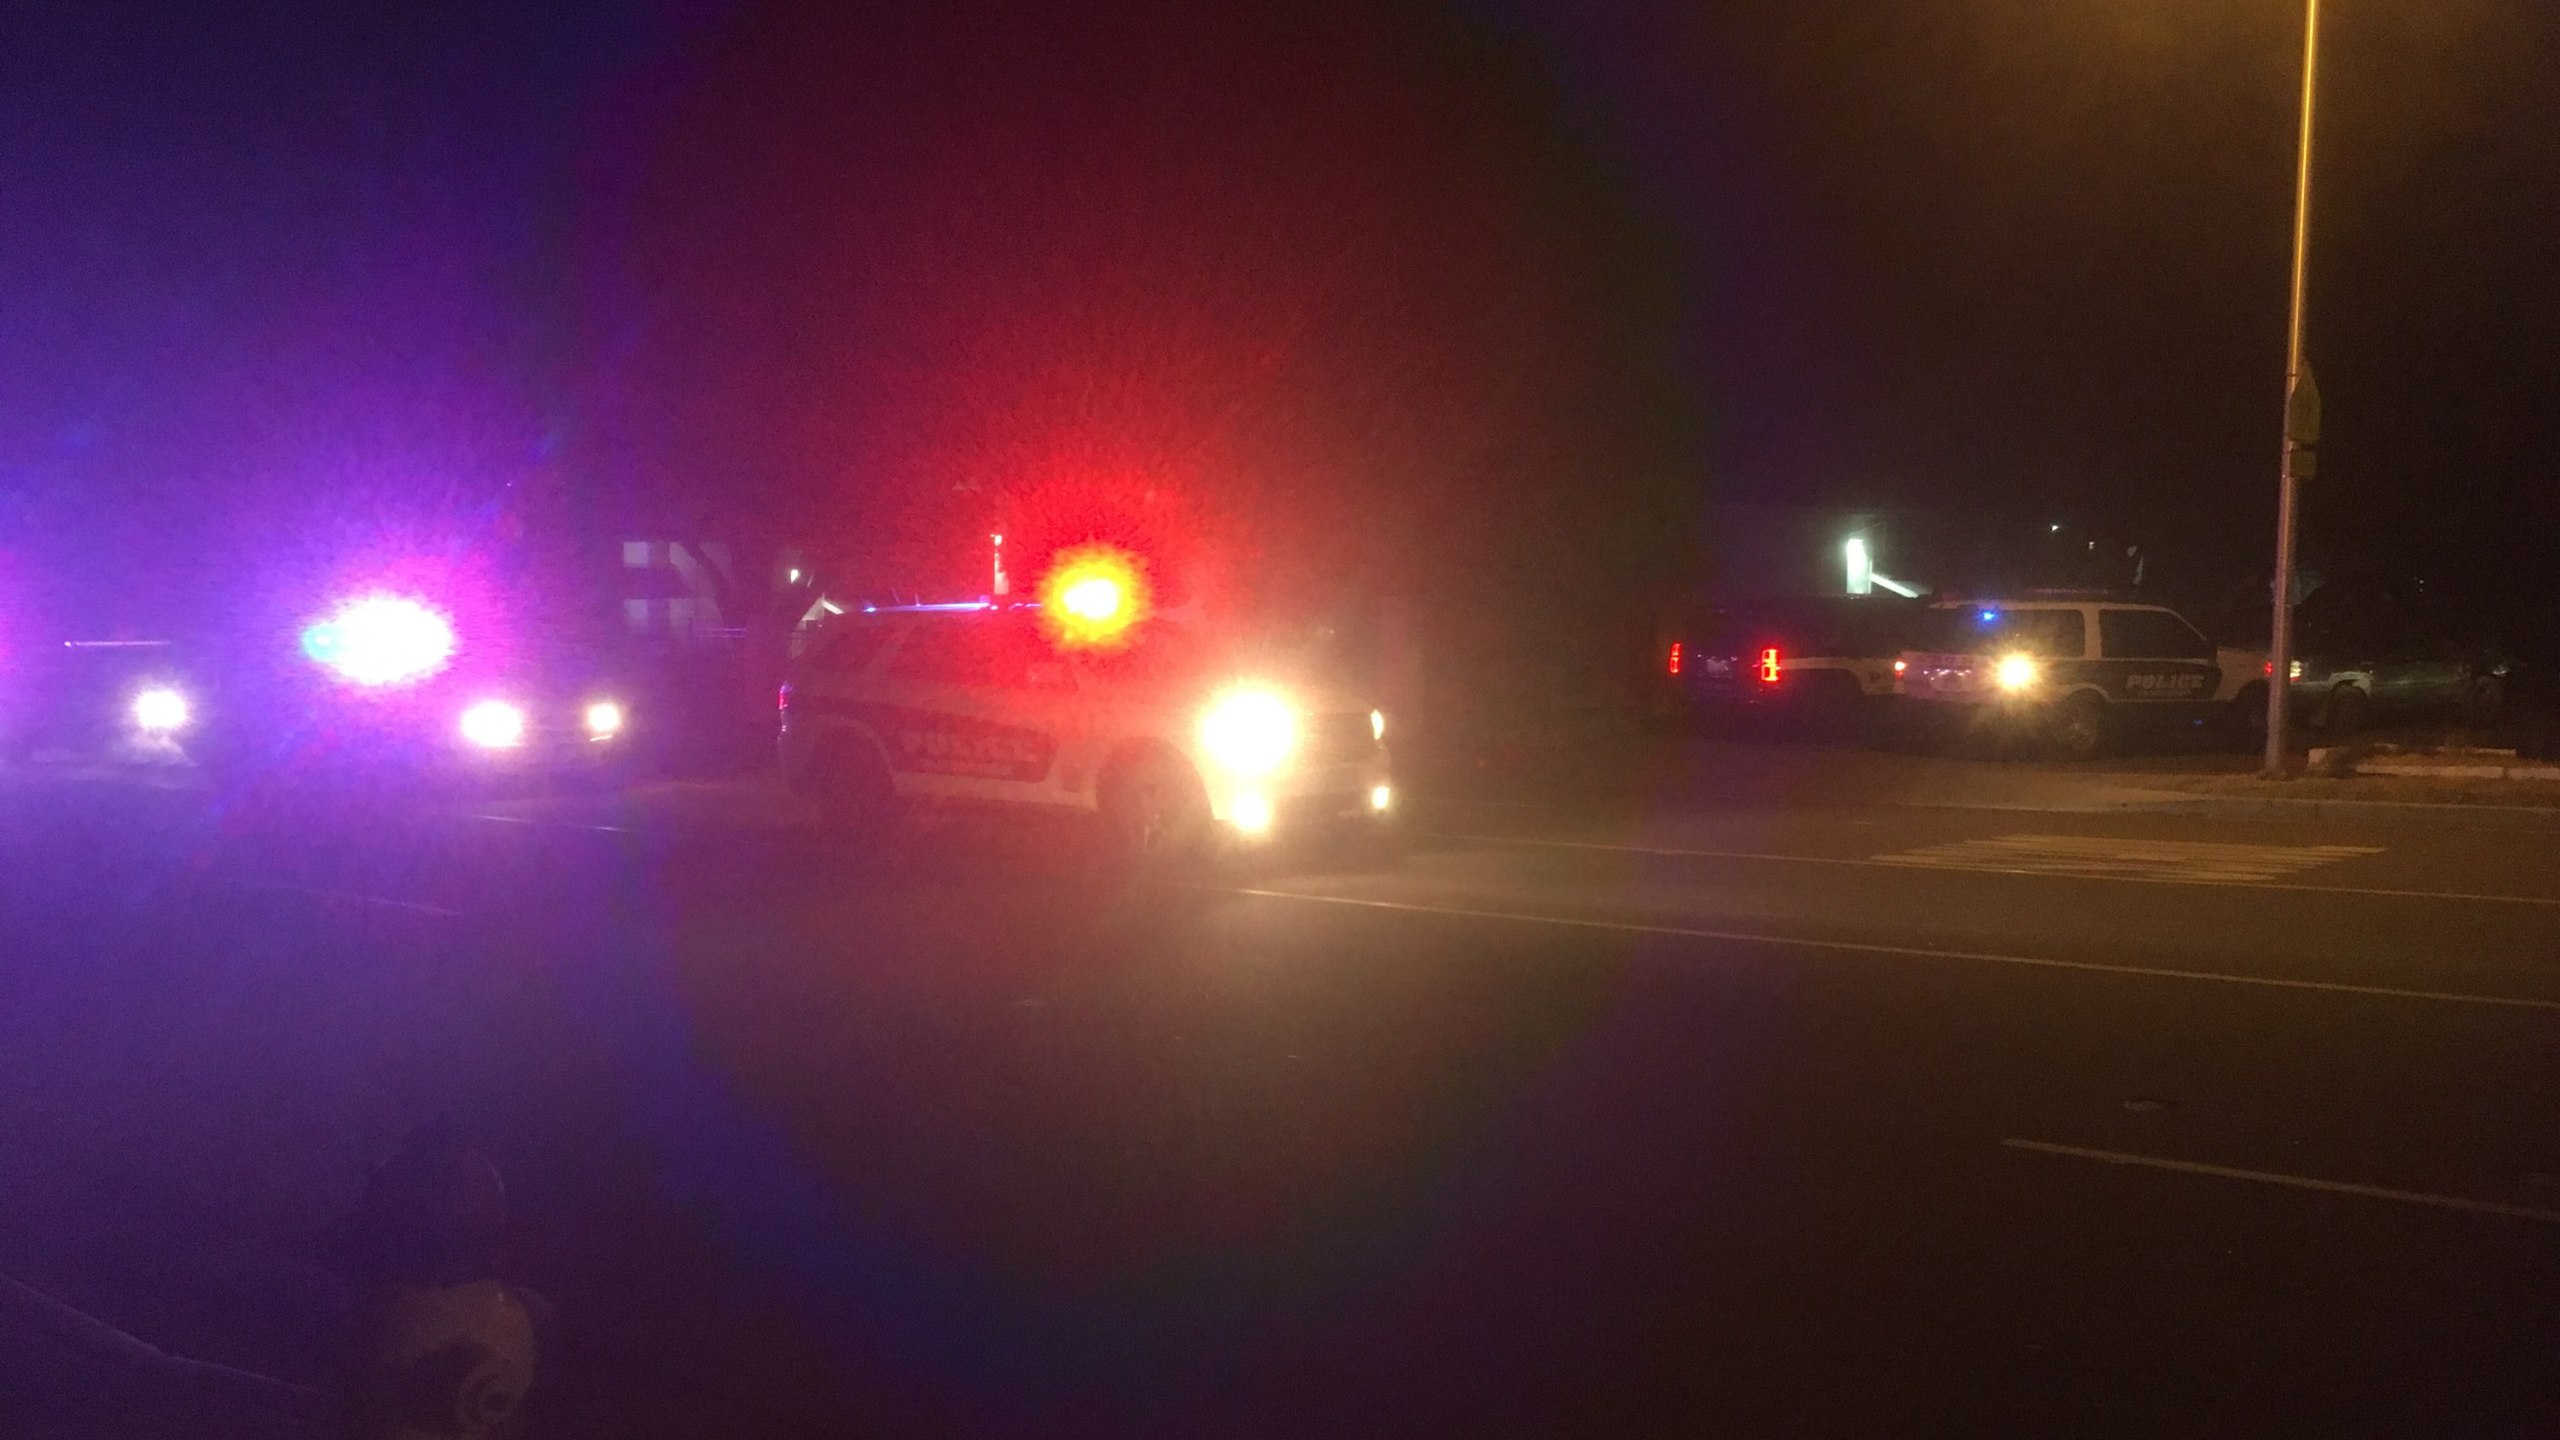 Police Searching For Suspect In South Central Colorado Springs